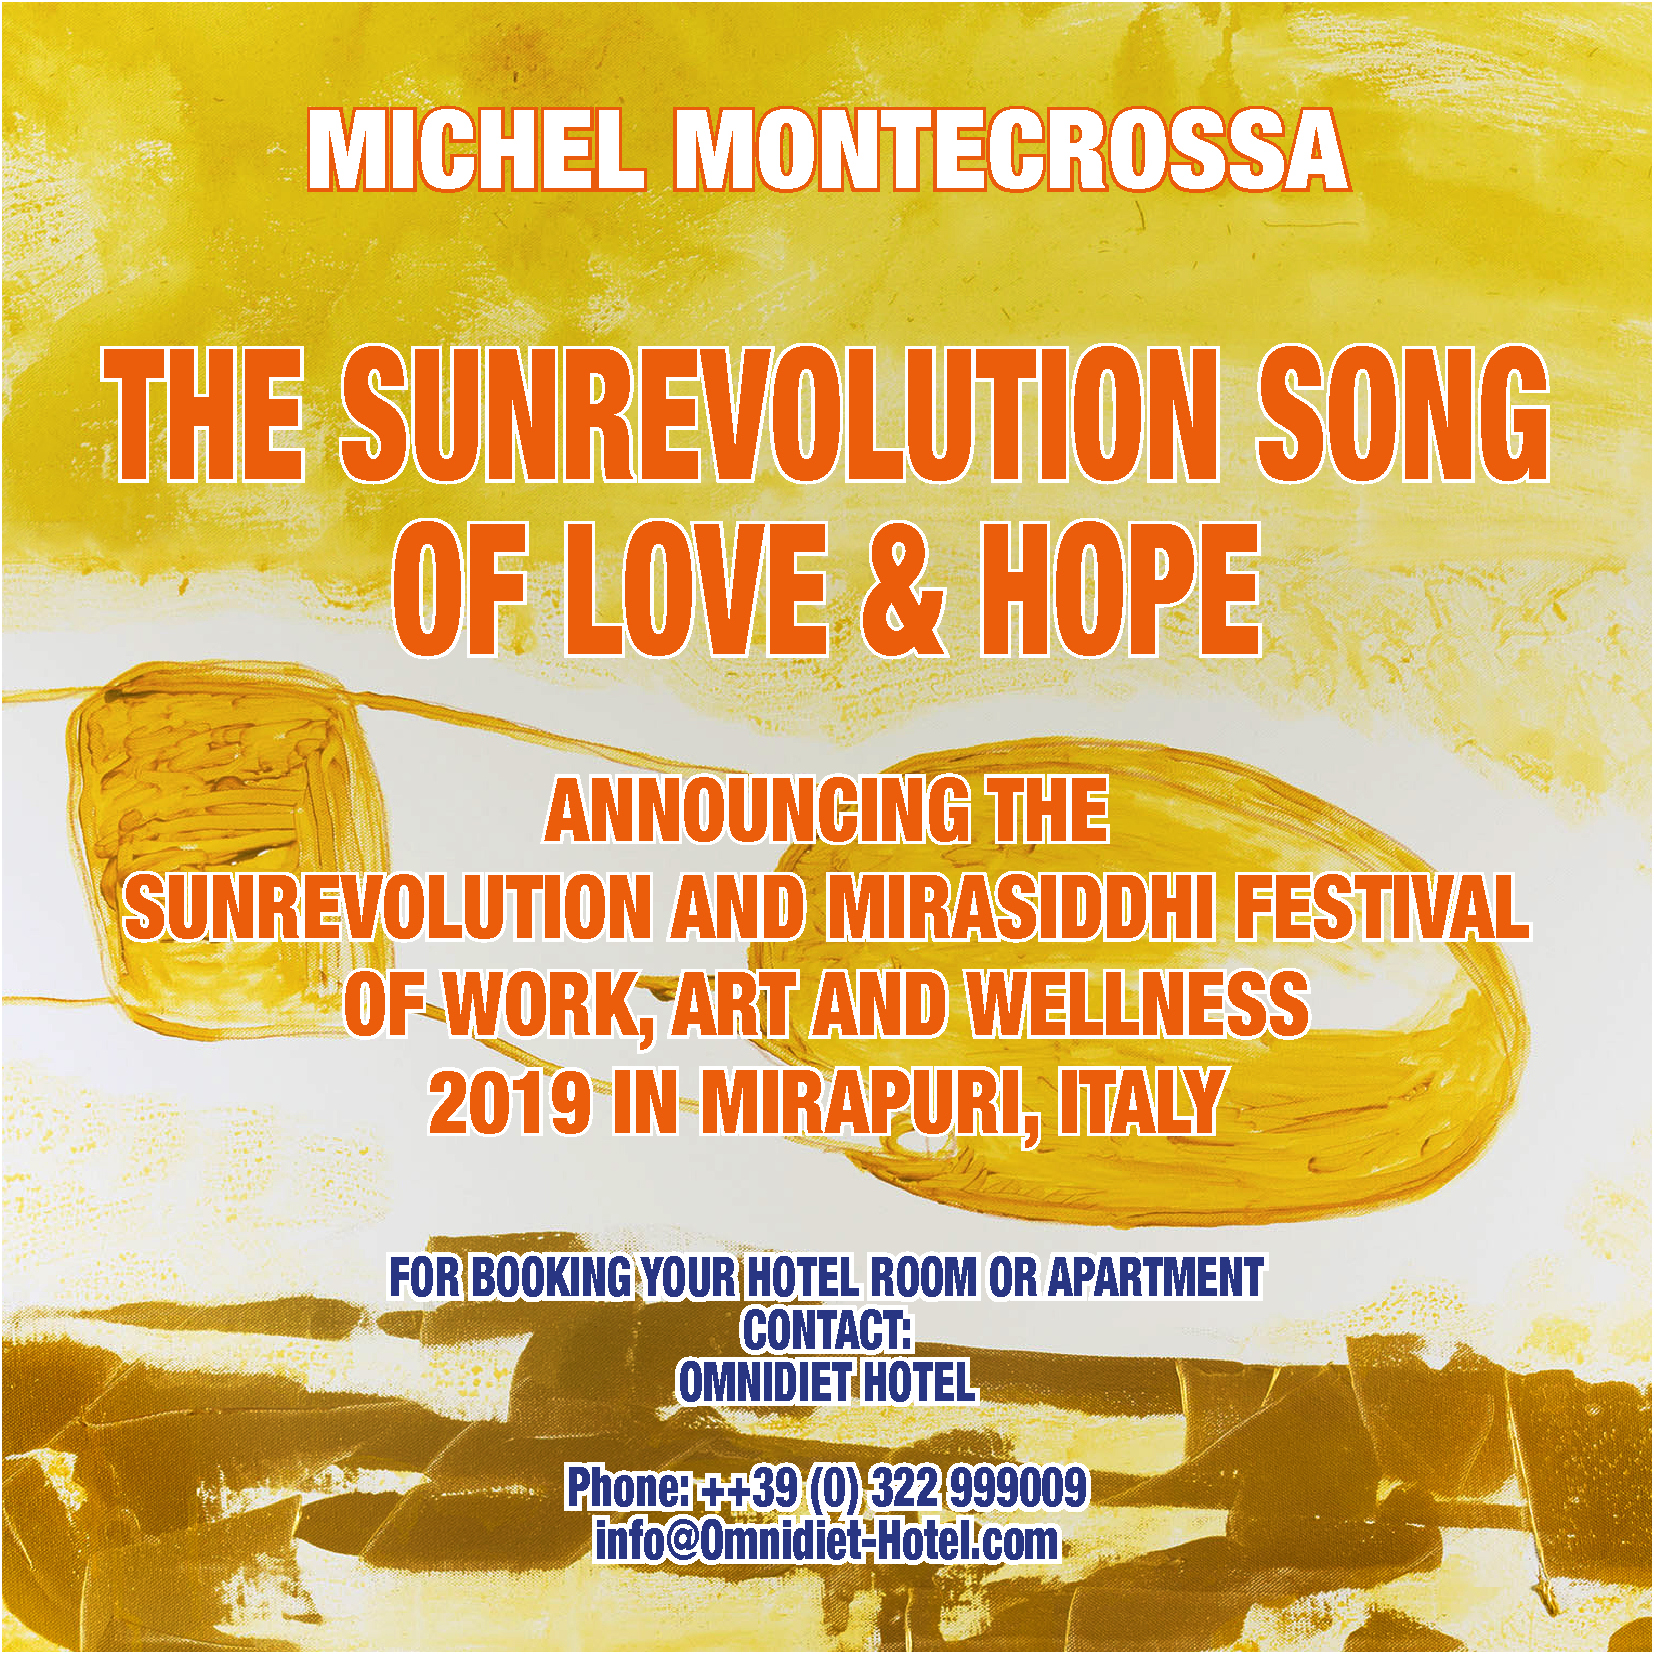 The Sunrevolution Song Of Love & Hope